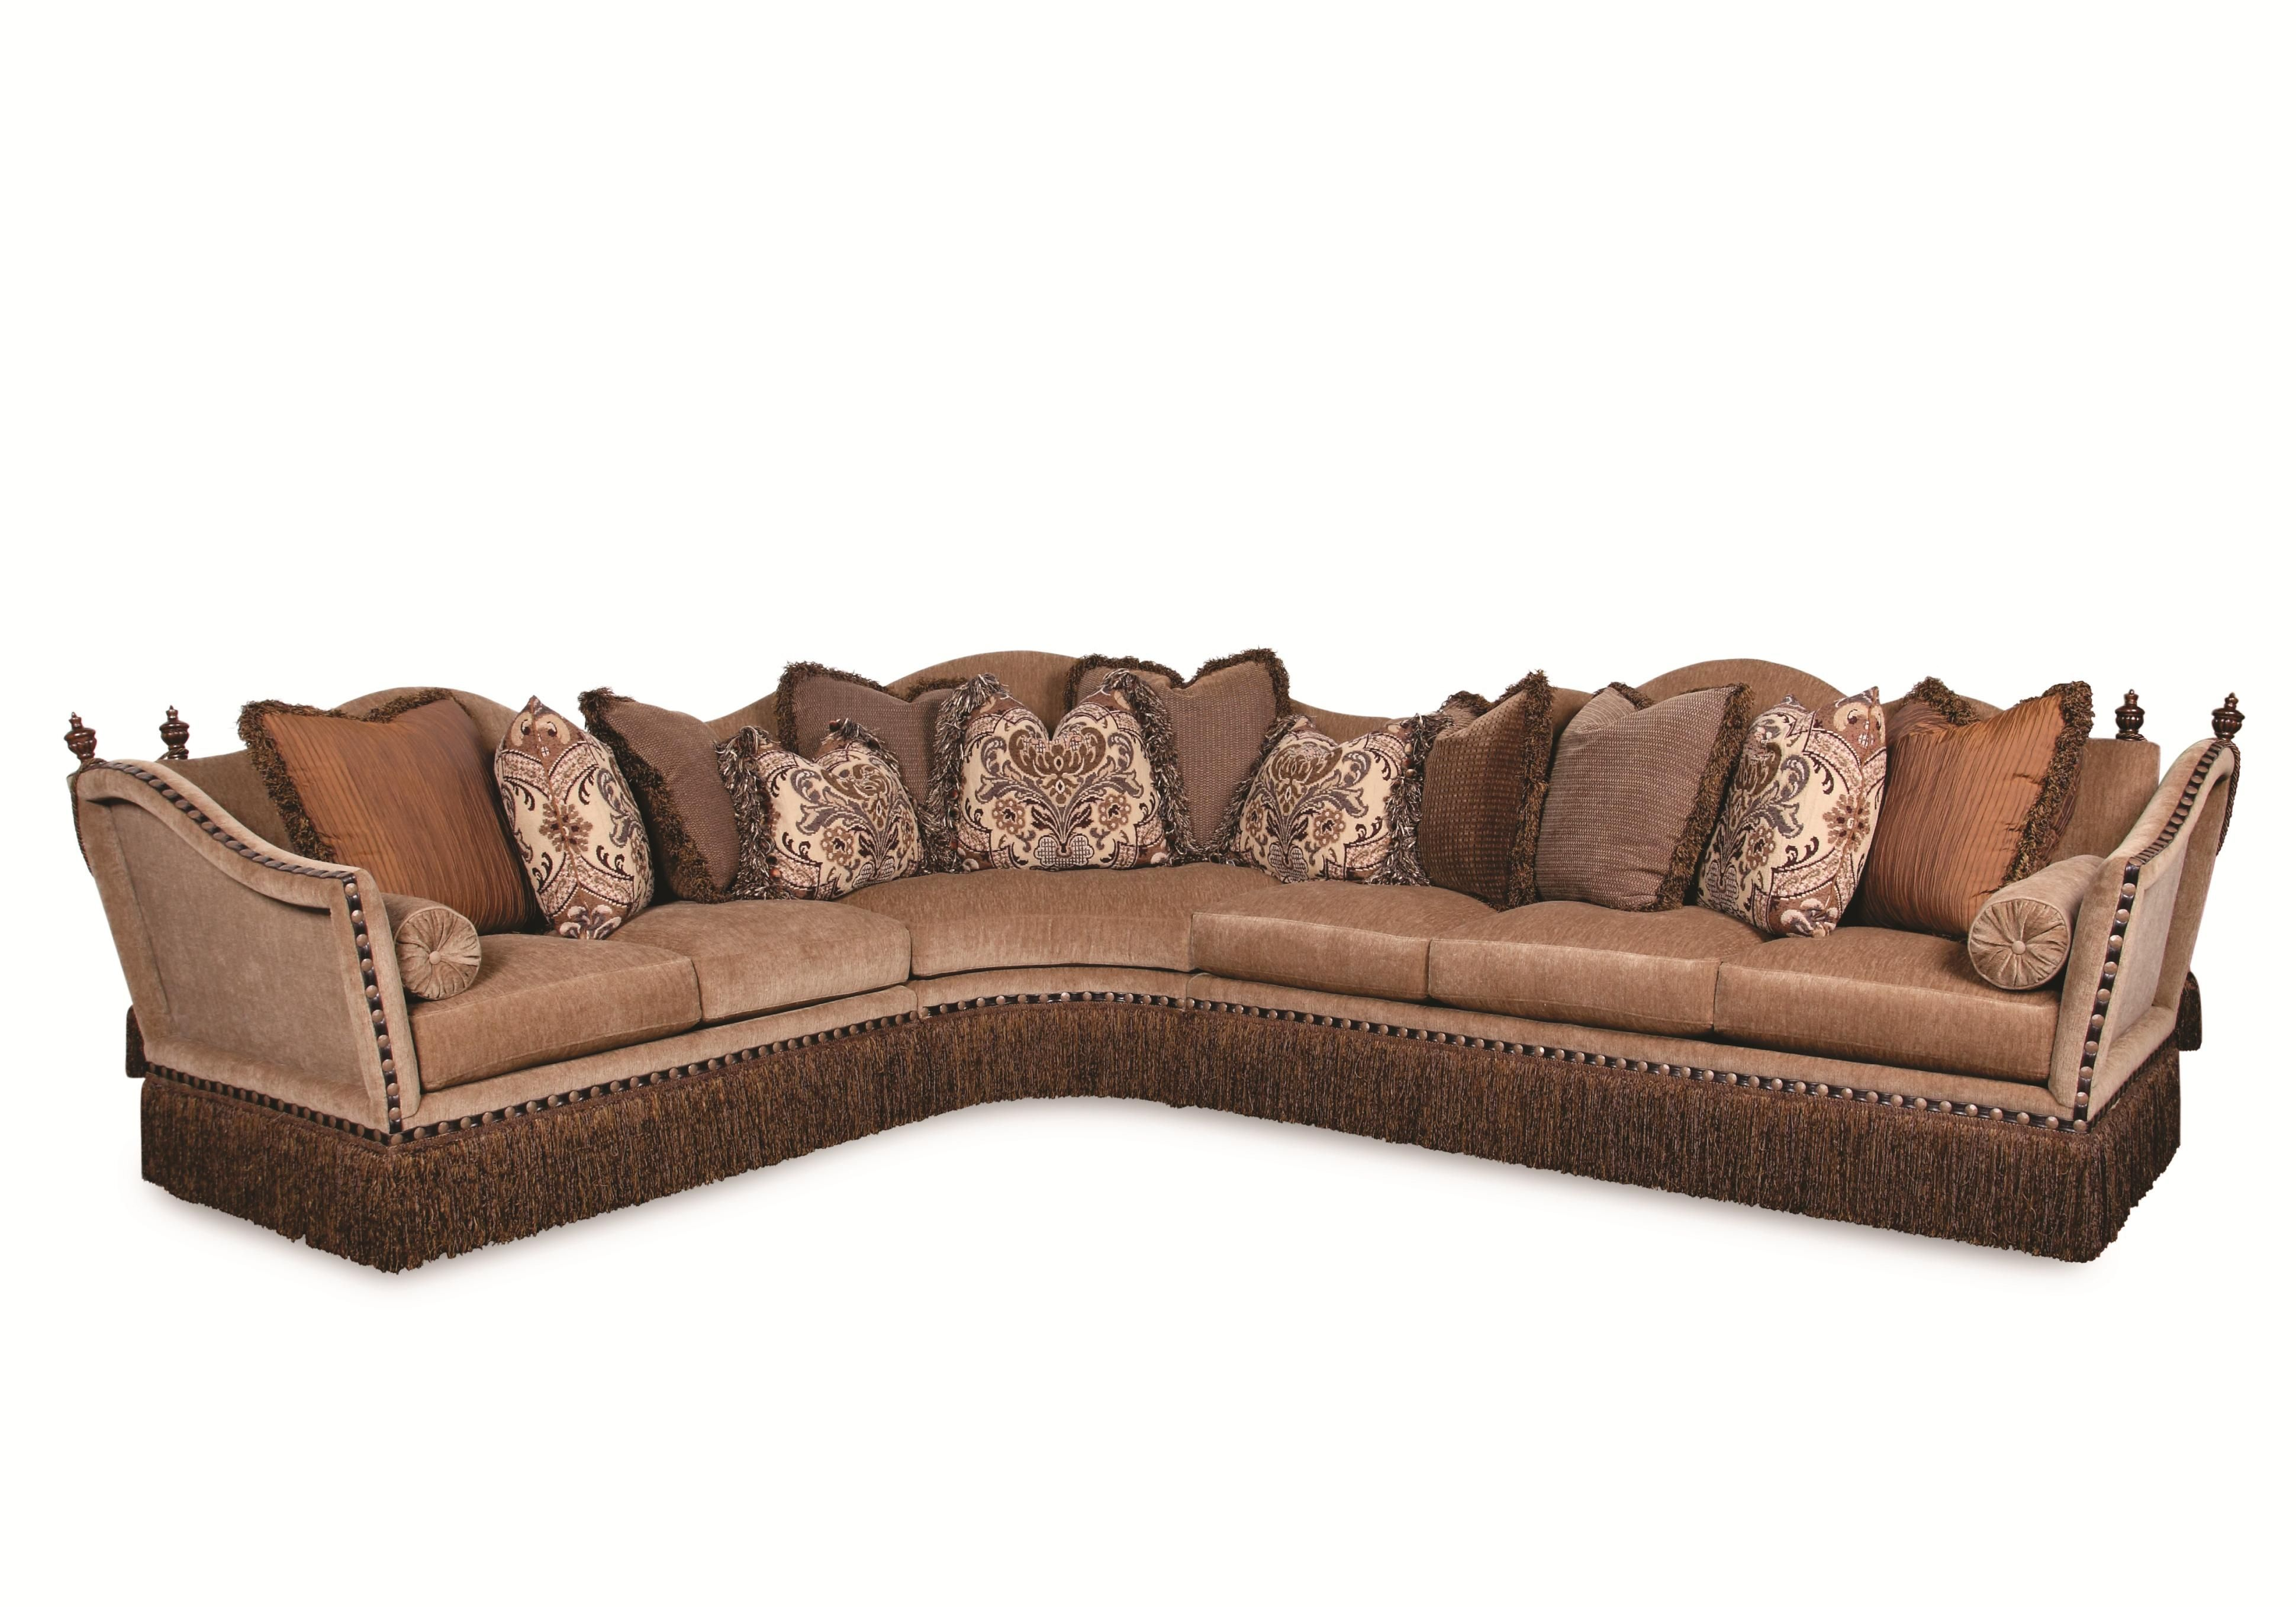 Lorraine Fringed Sectional Sofa by Rachlin Classics